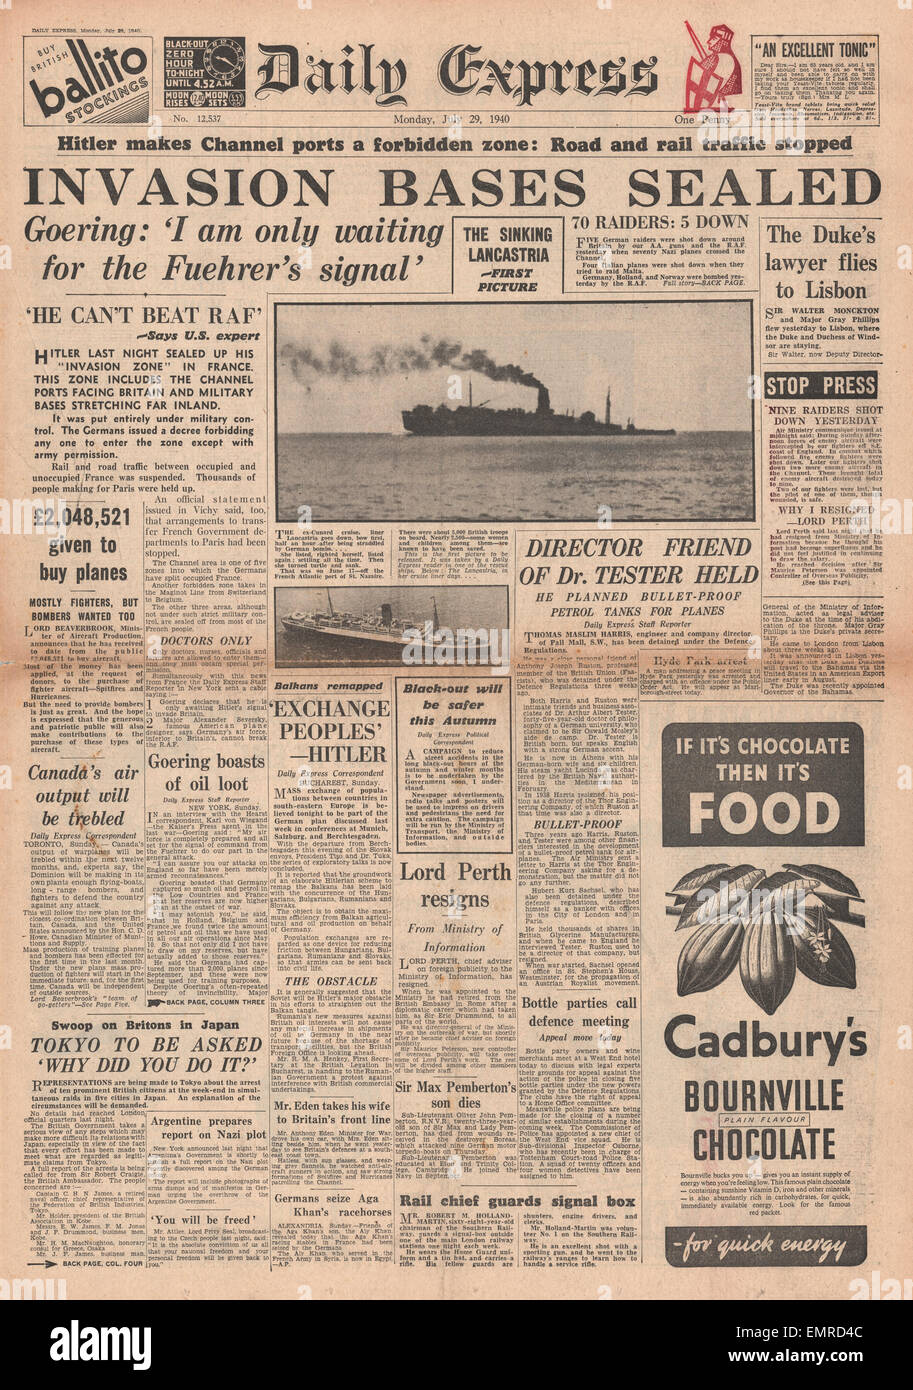 1940 front page Daily Express France divided between occupied unoccupied pictures of sinking of the Lancastria - Stock Image